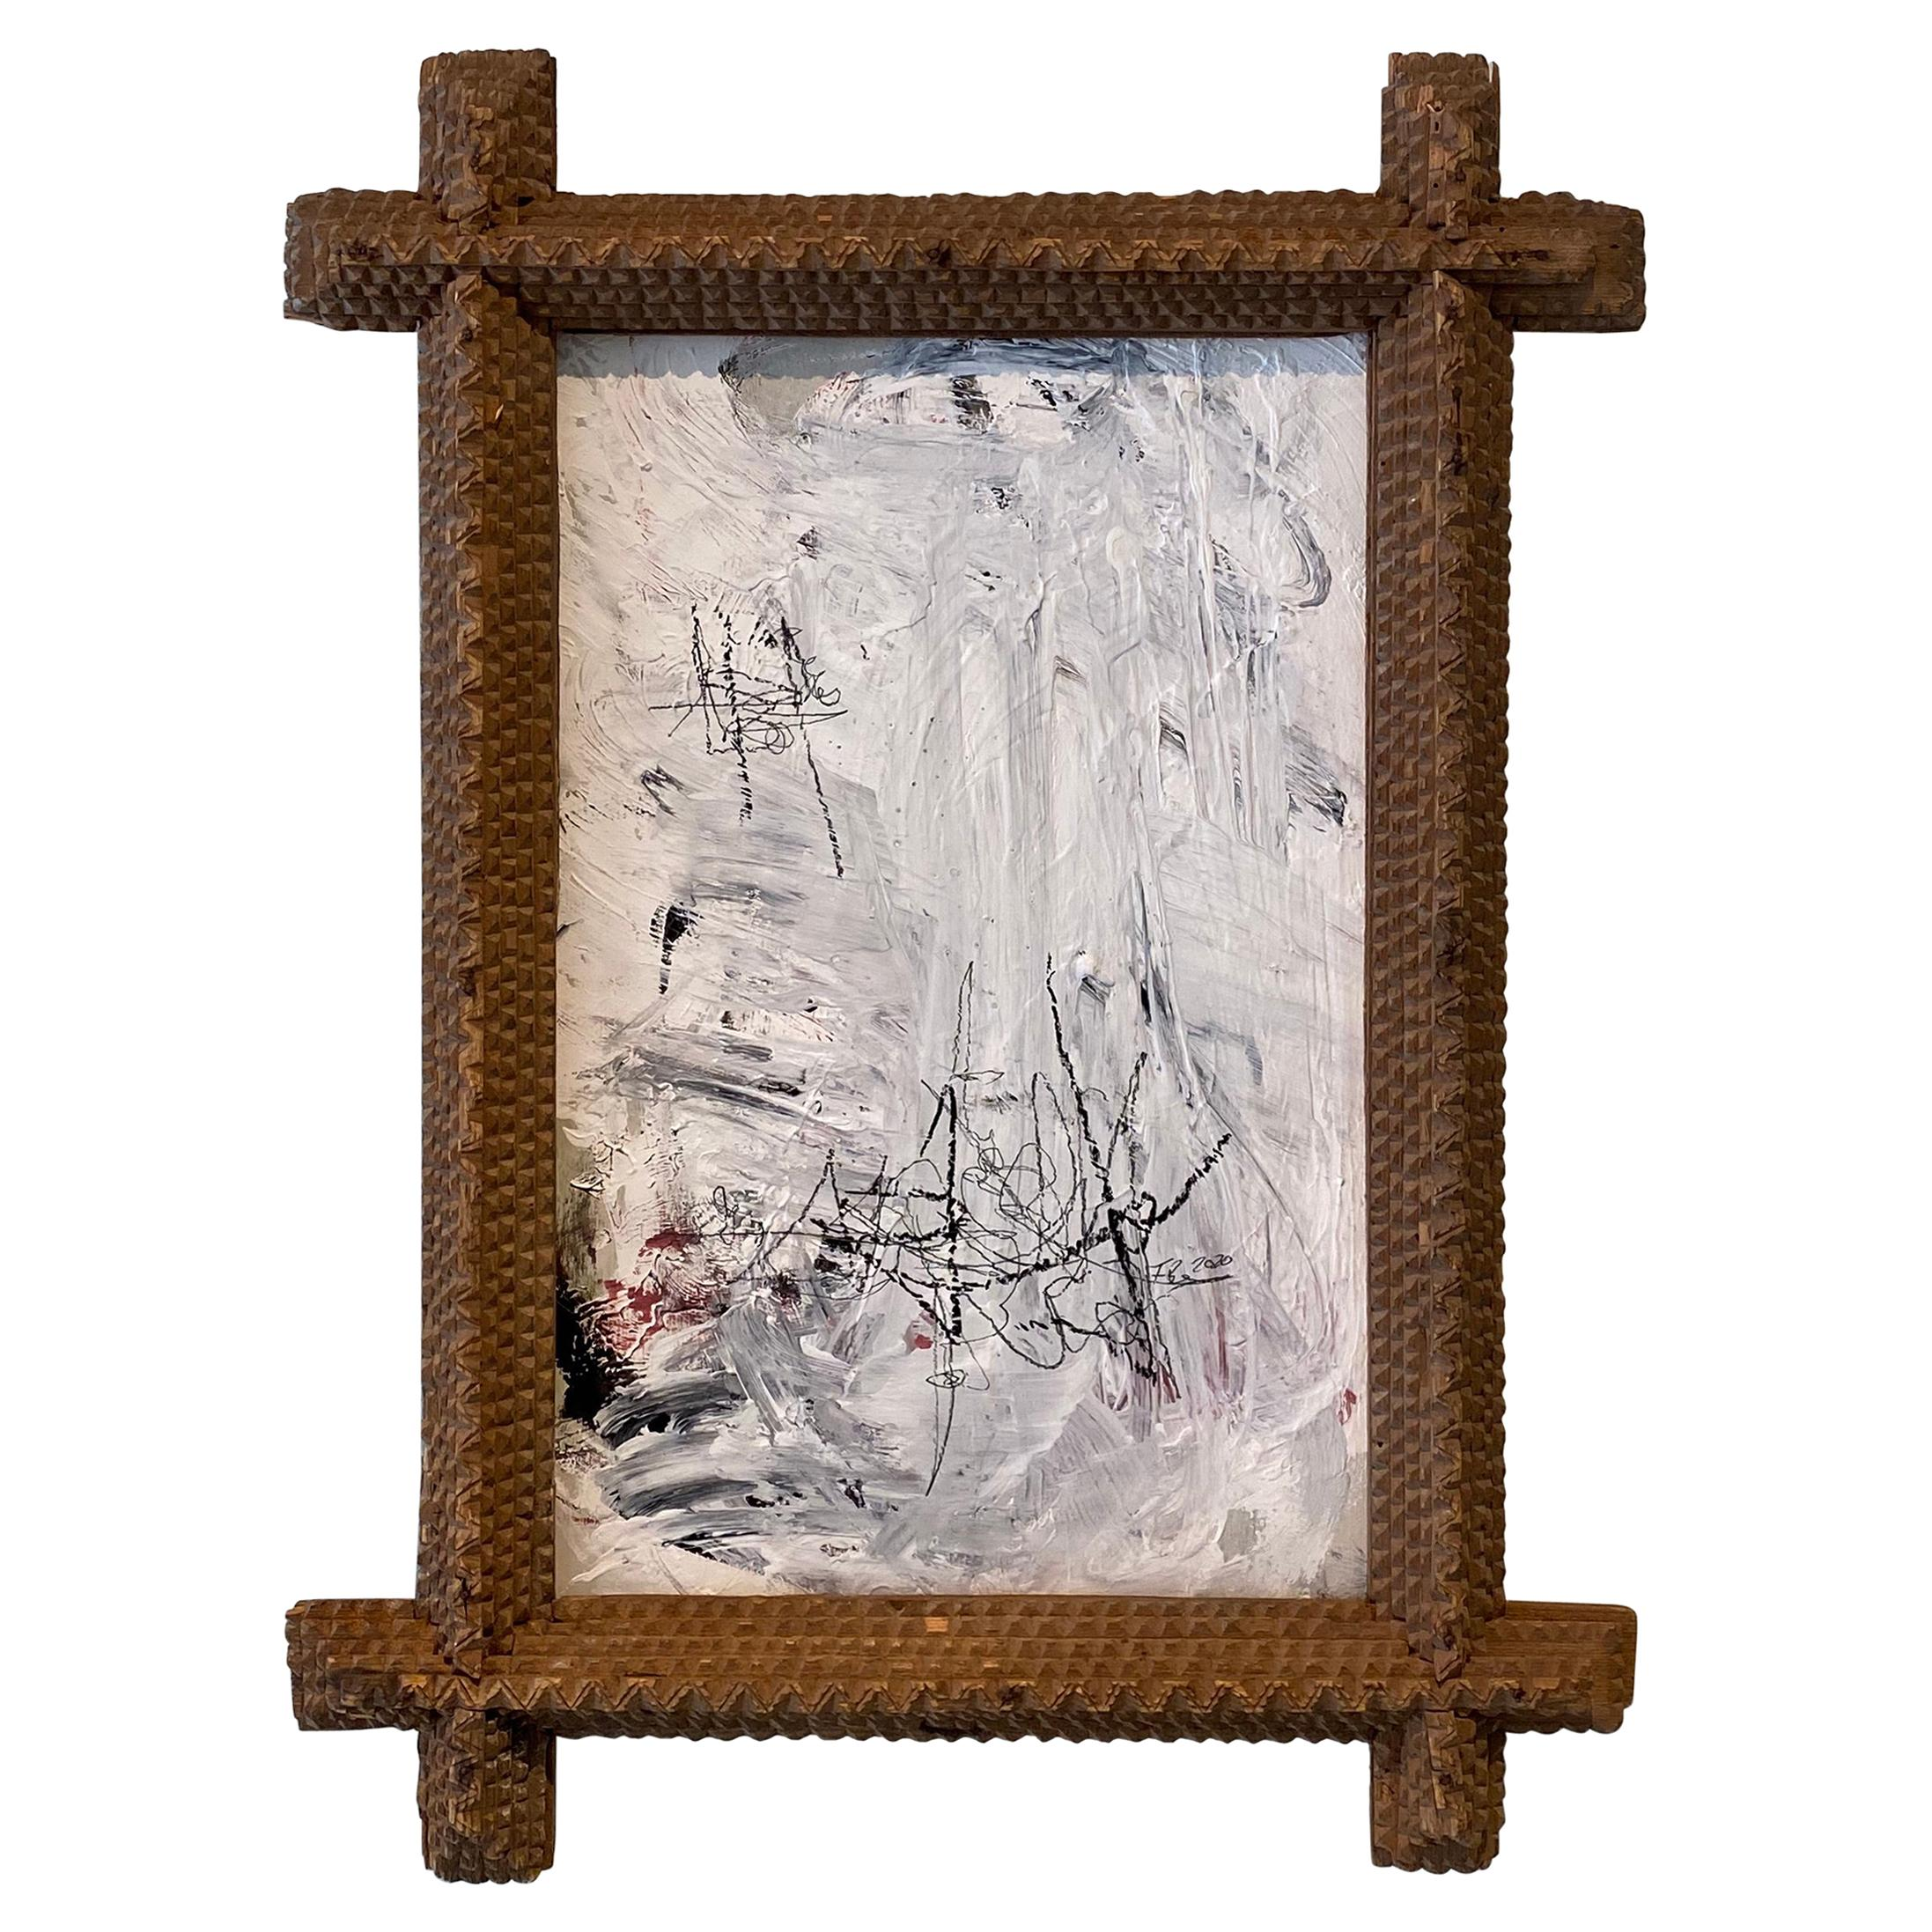 Contemporary Modern Abstract Framed Grey White Black Acrylic Painting on Wood